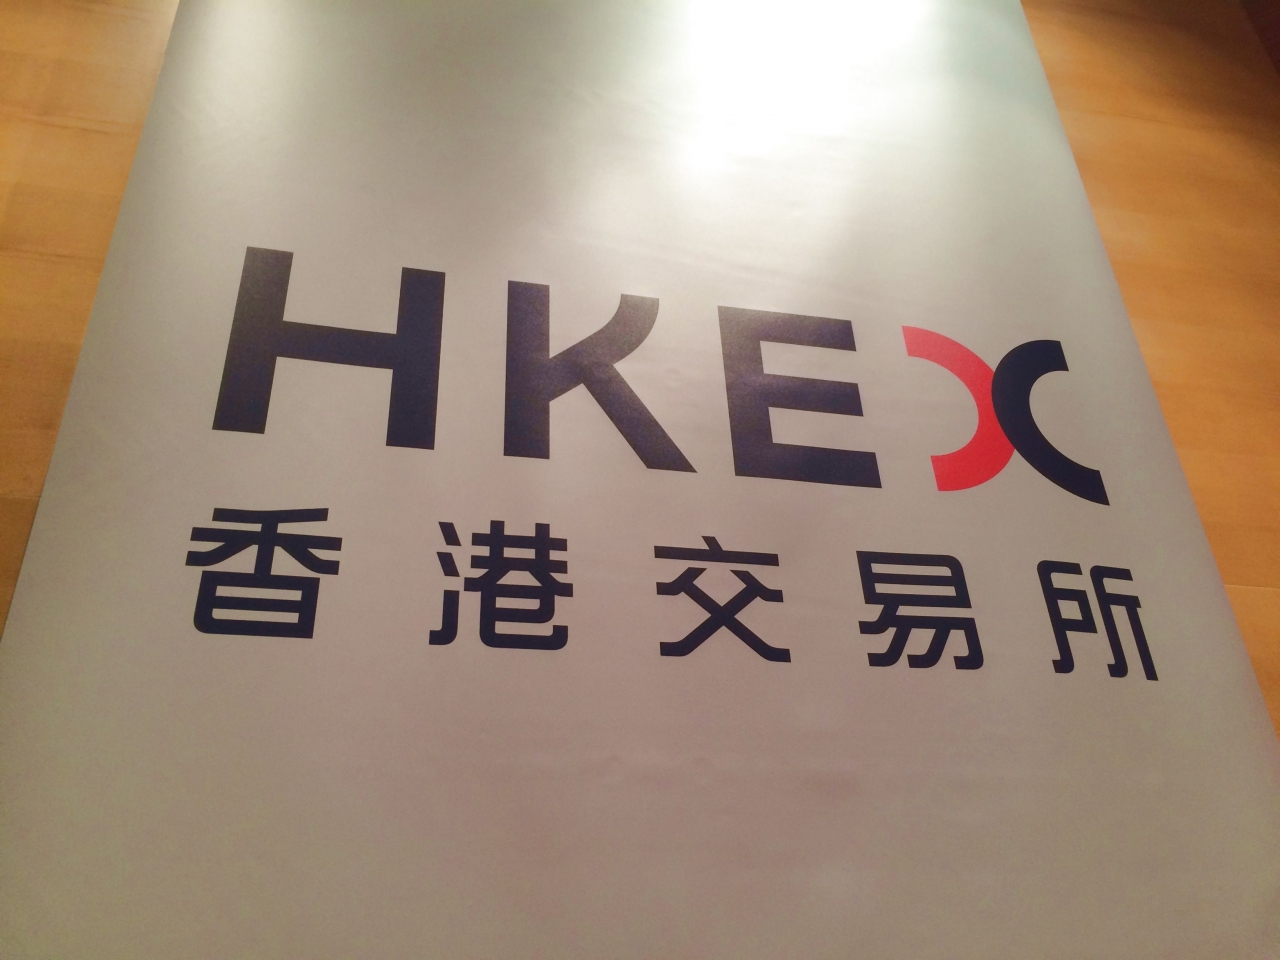 The Hang Seng Index fell 0.7 percent in the opening minutes. File photo: RTHK